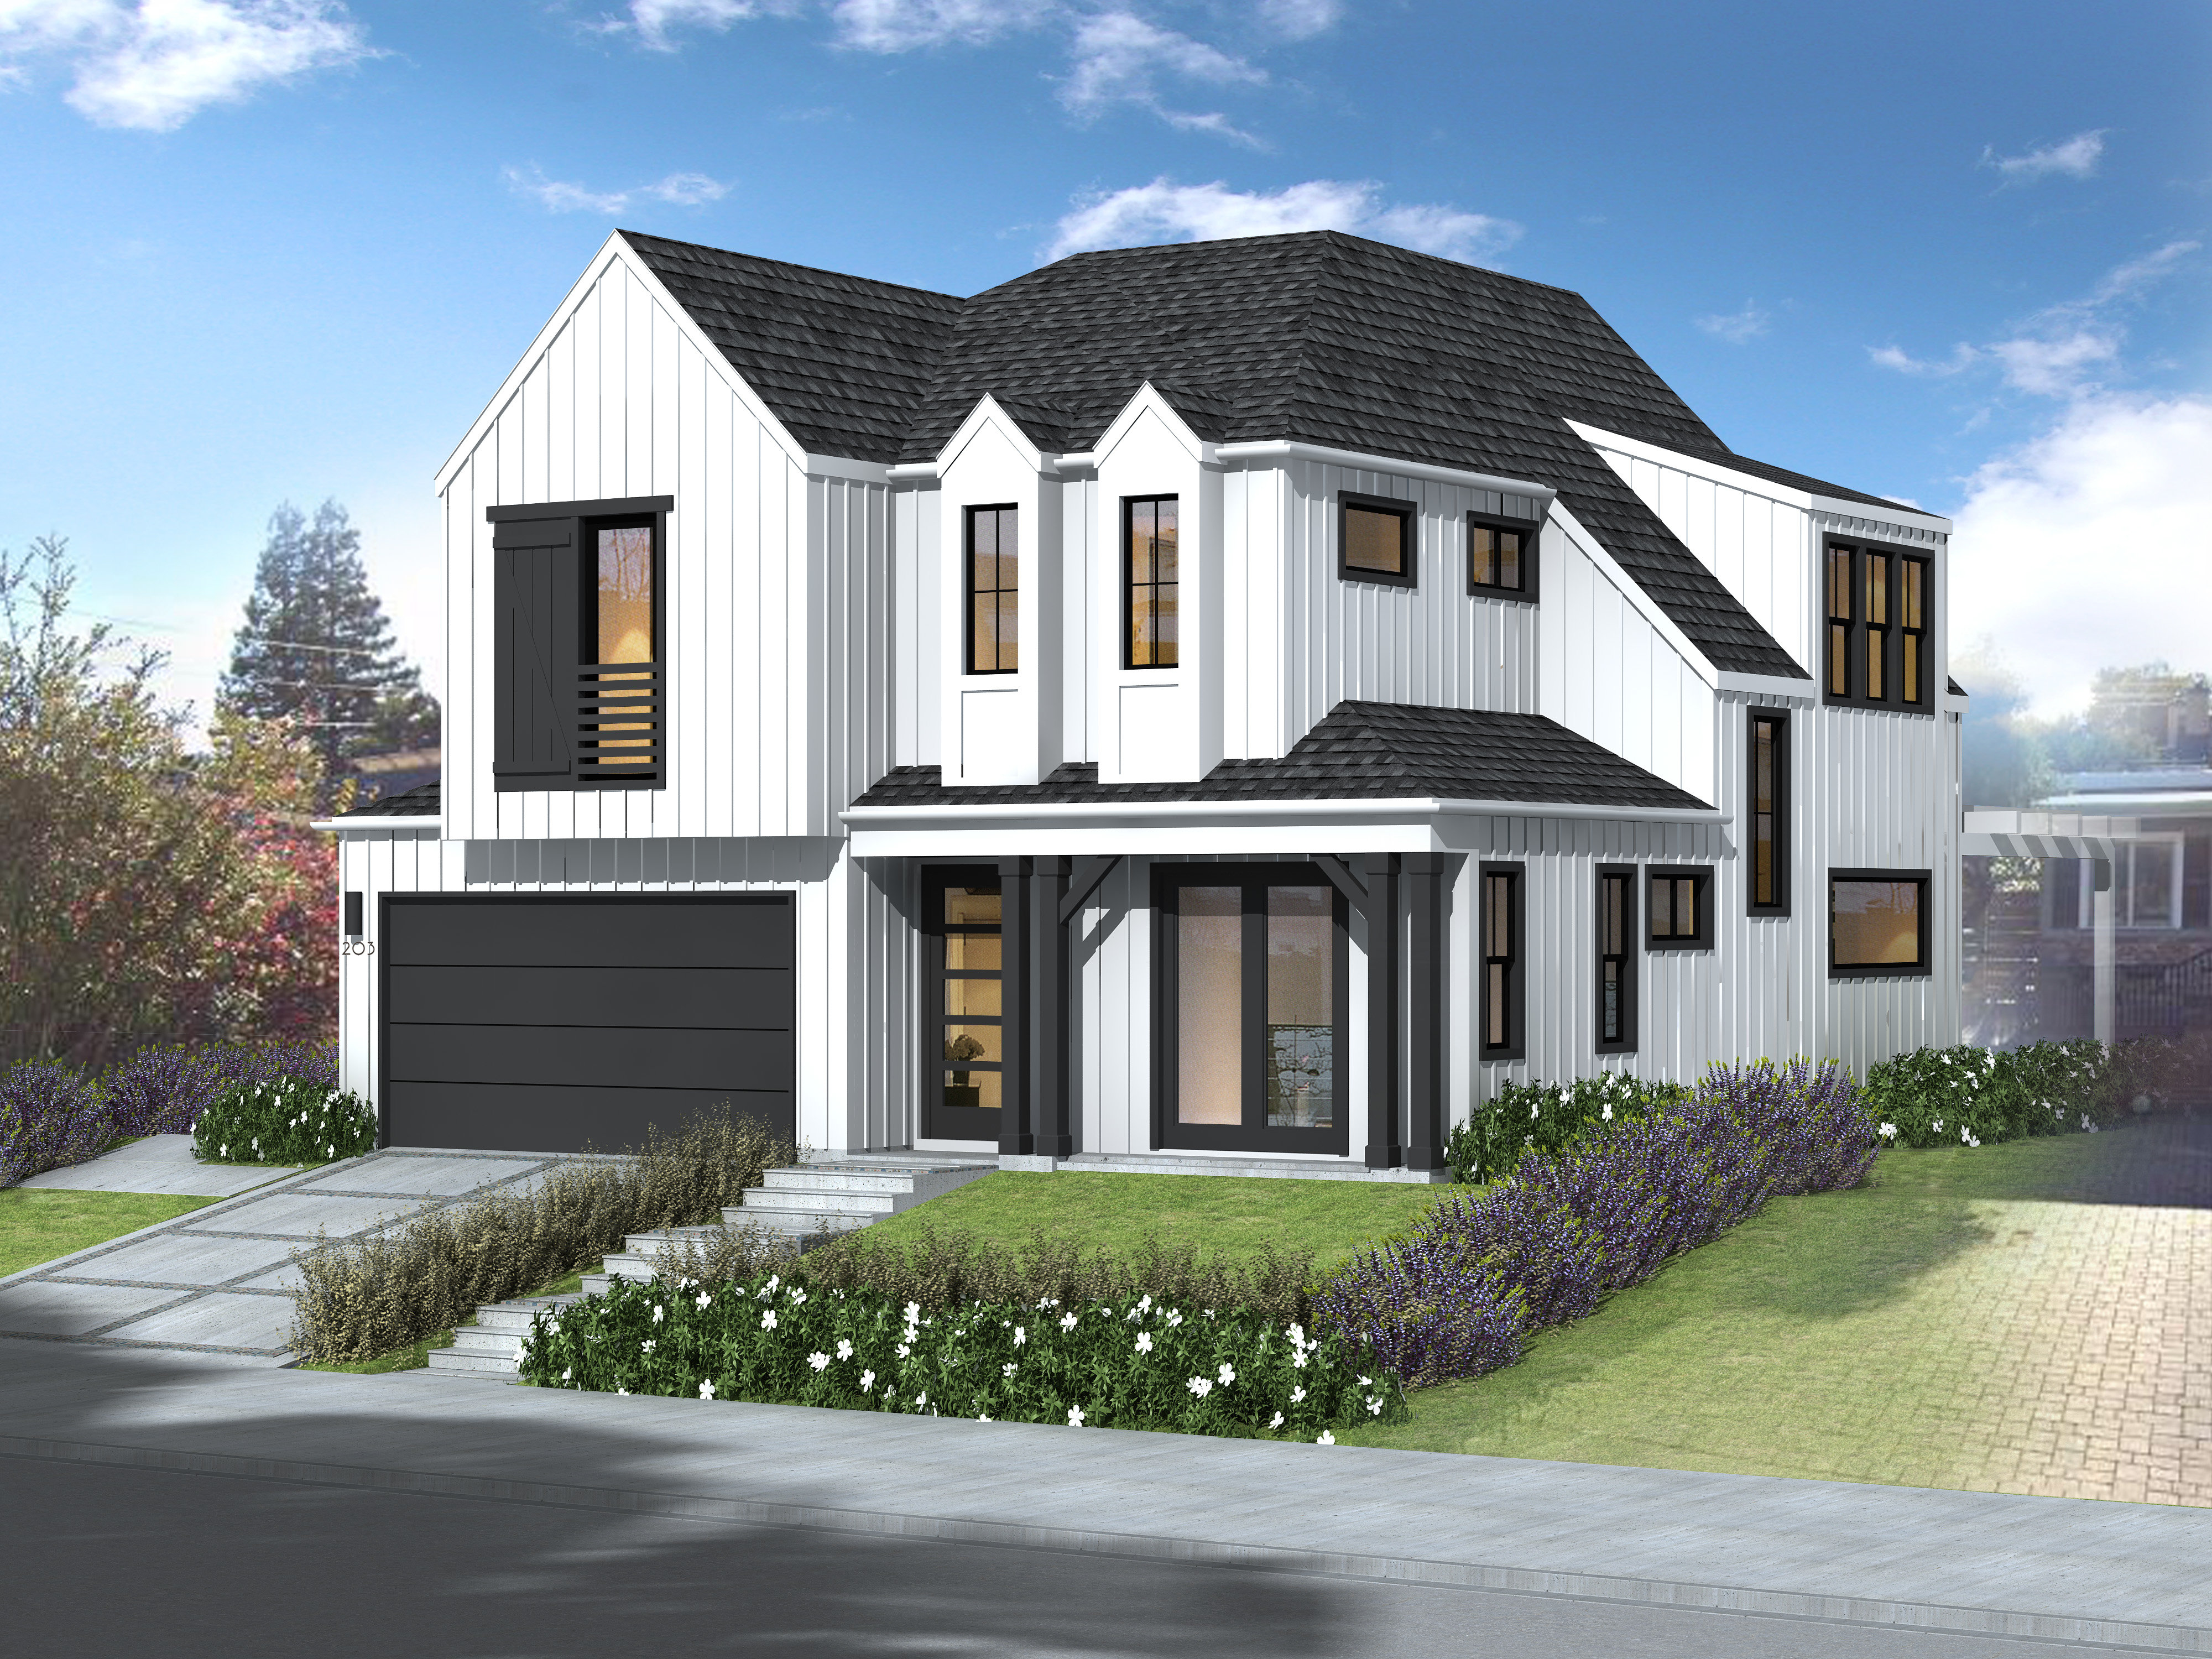 203 LELAND Rendering Side 10.28.20